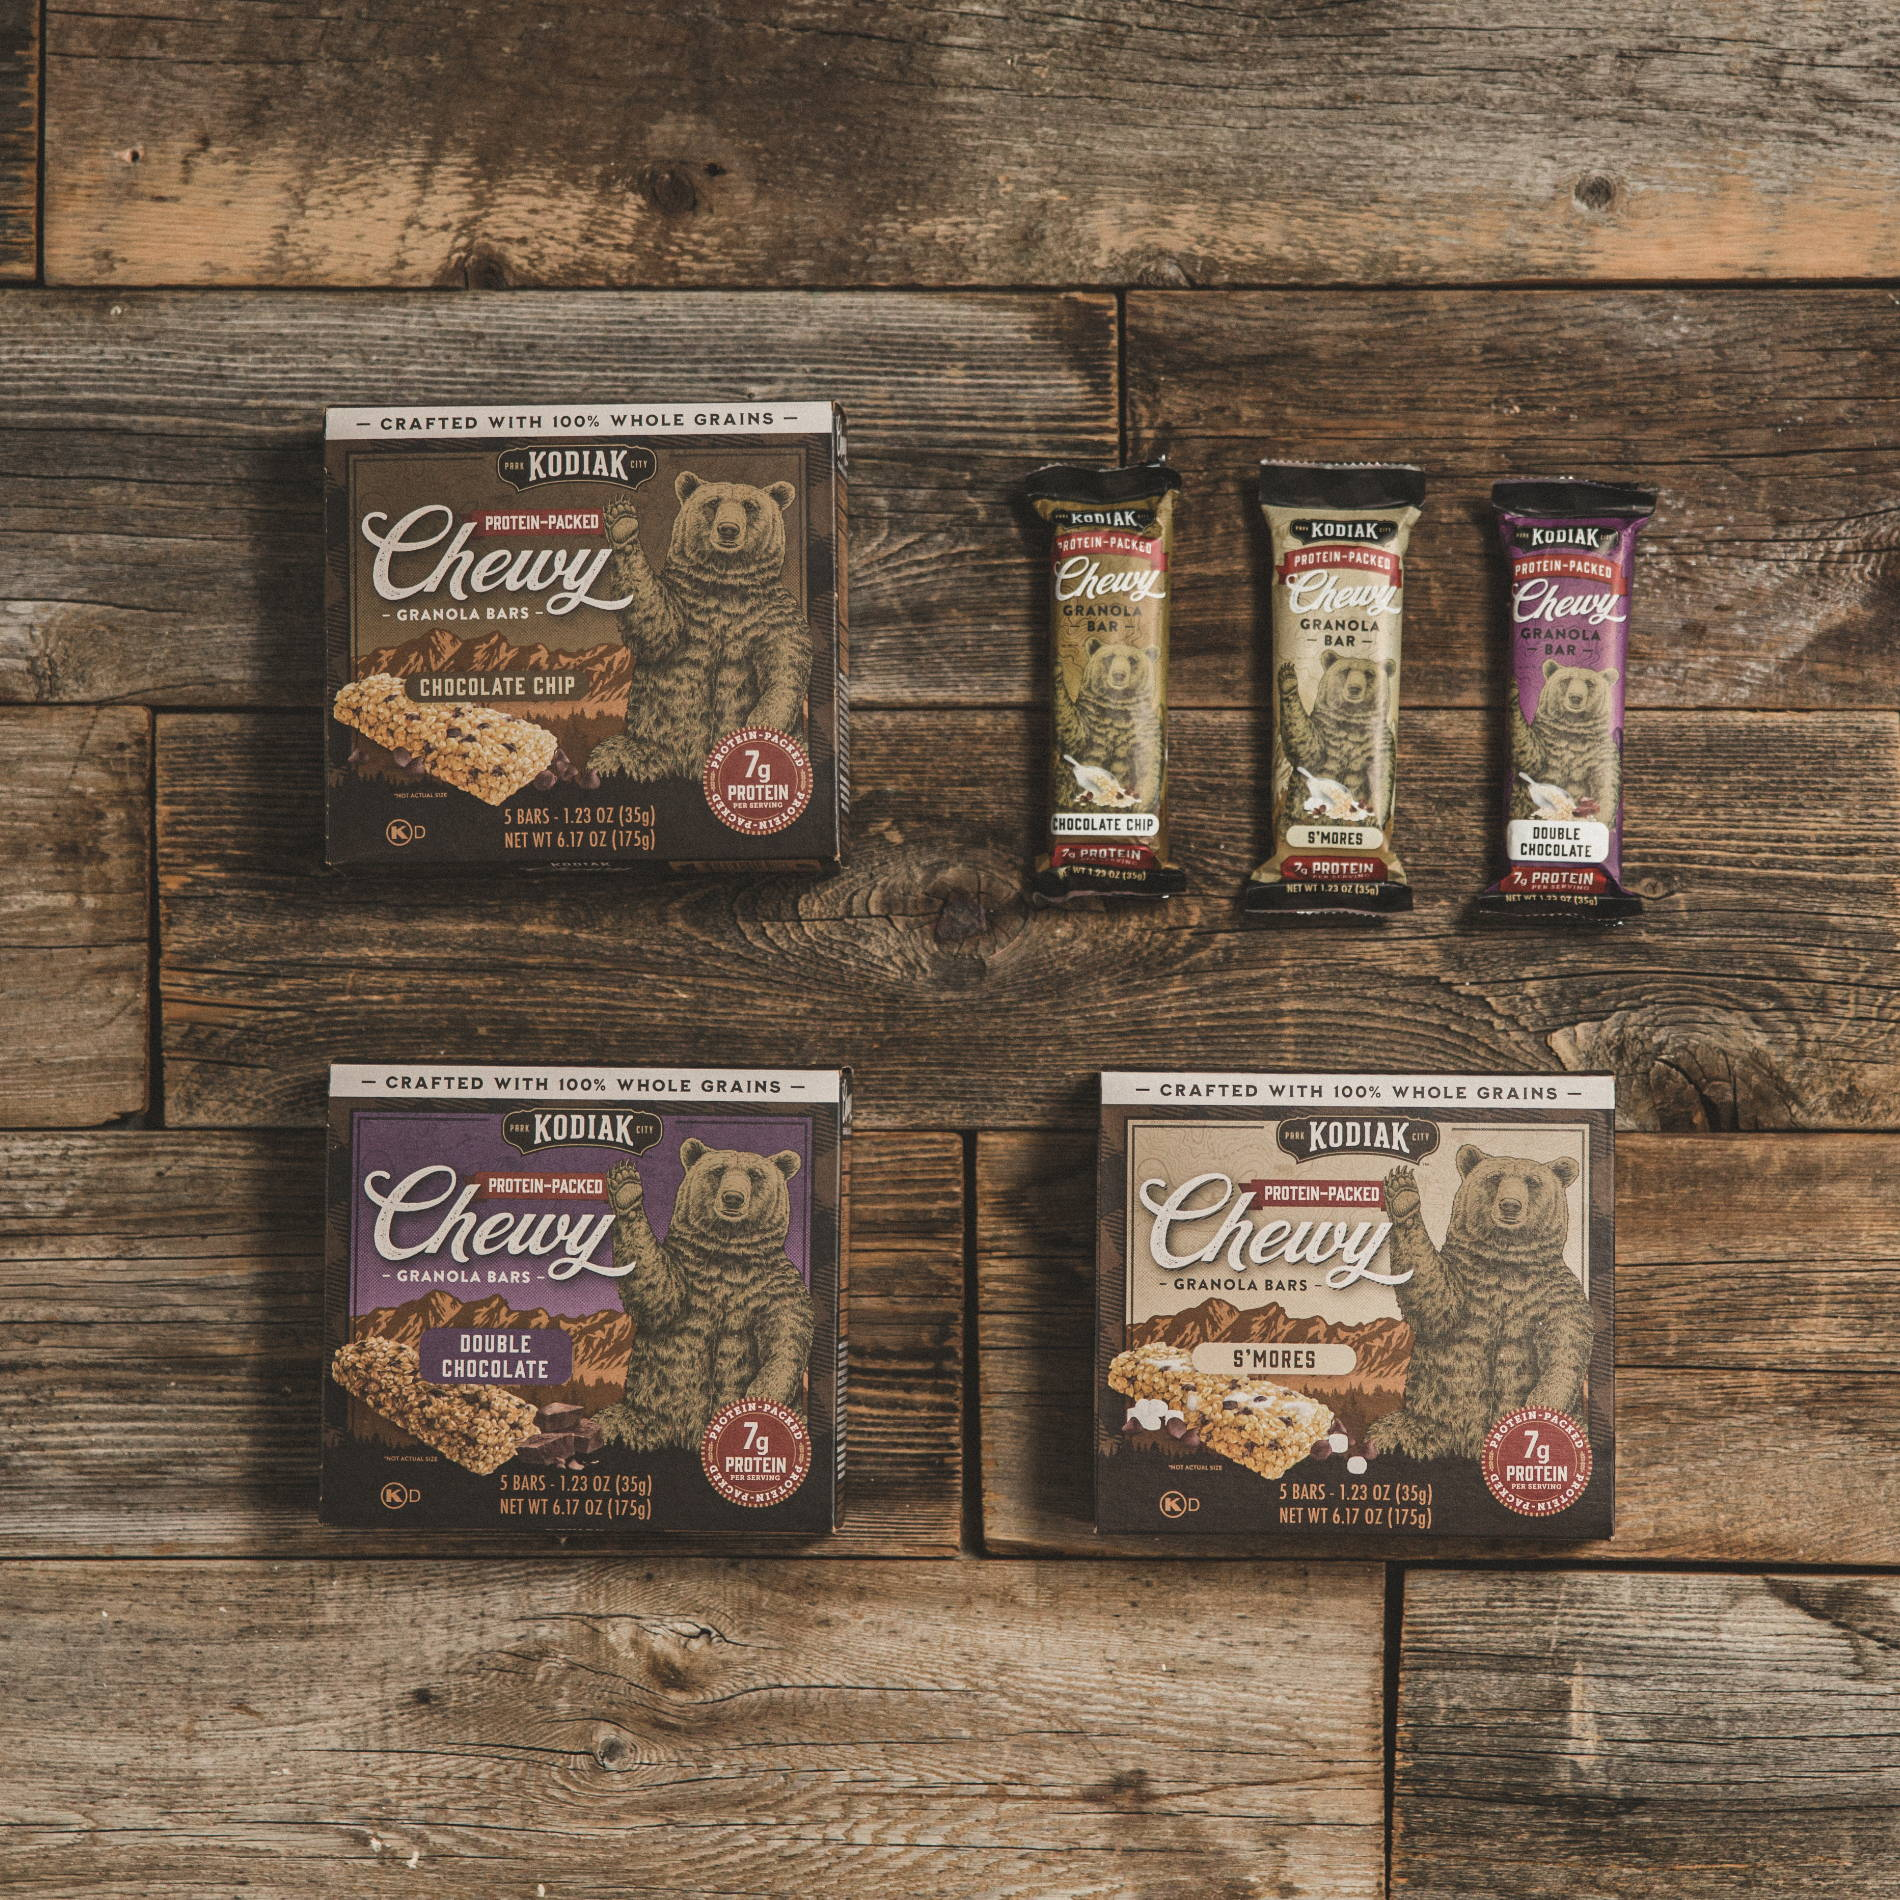 chewy bar sampler boxes